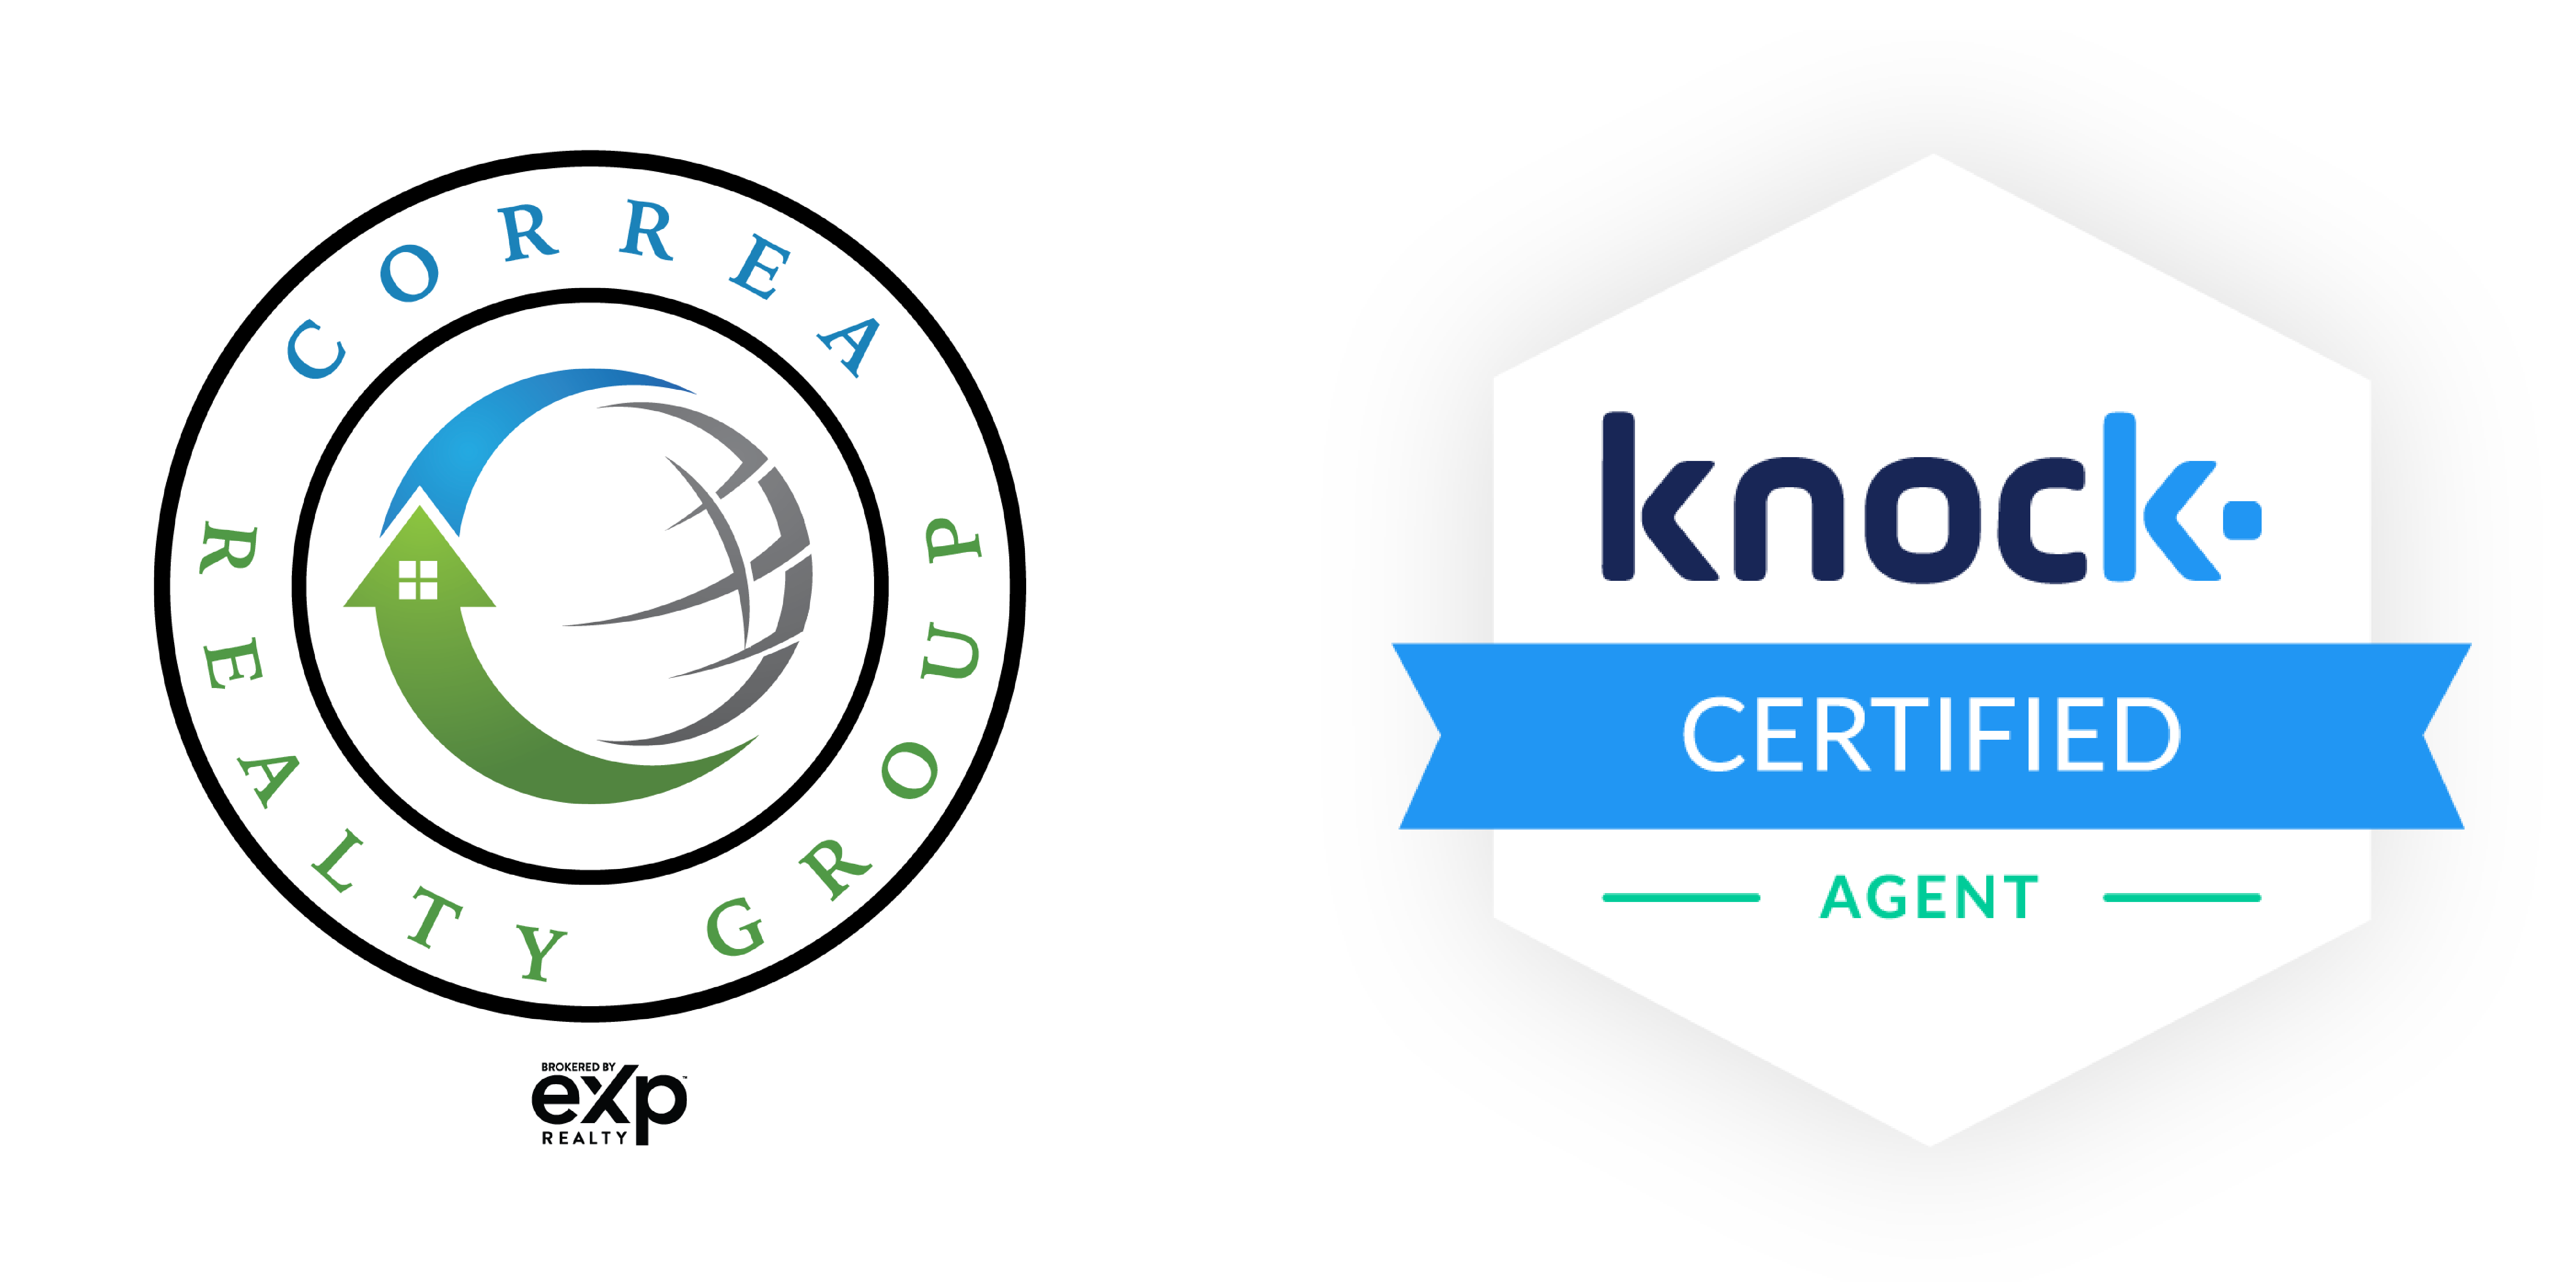 Correa Realty Group - Knock Certified Agent